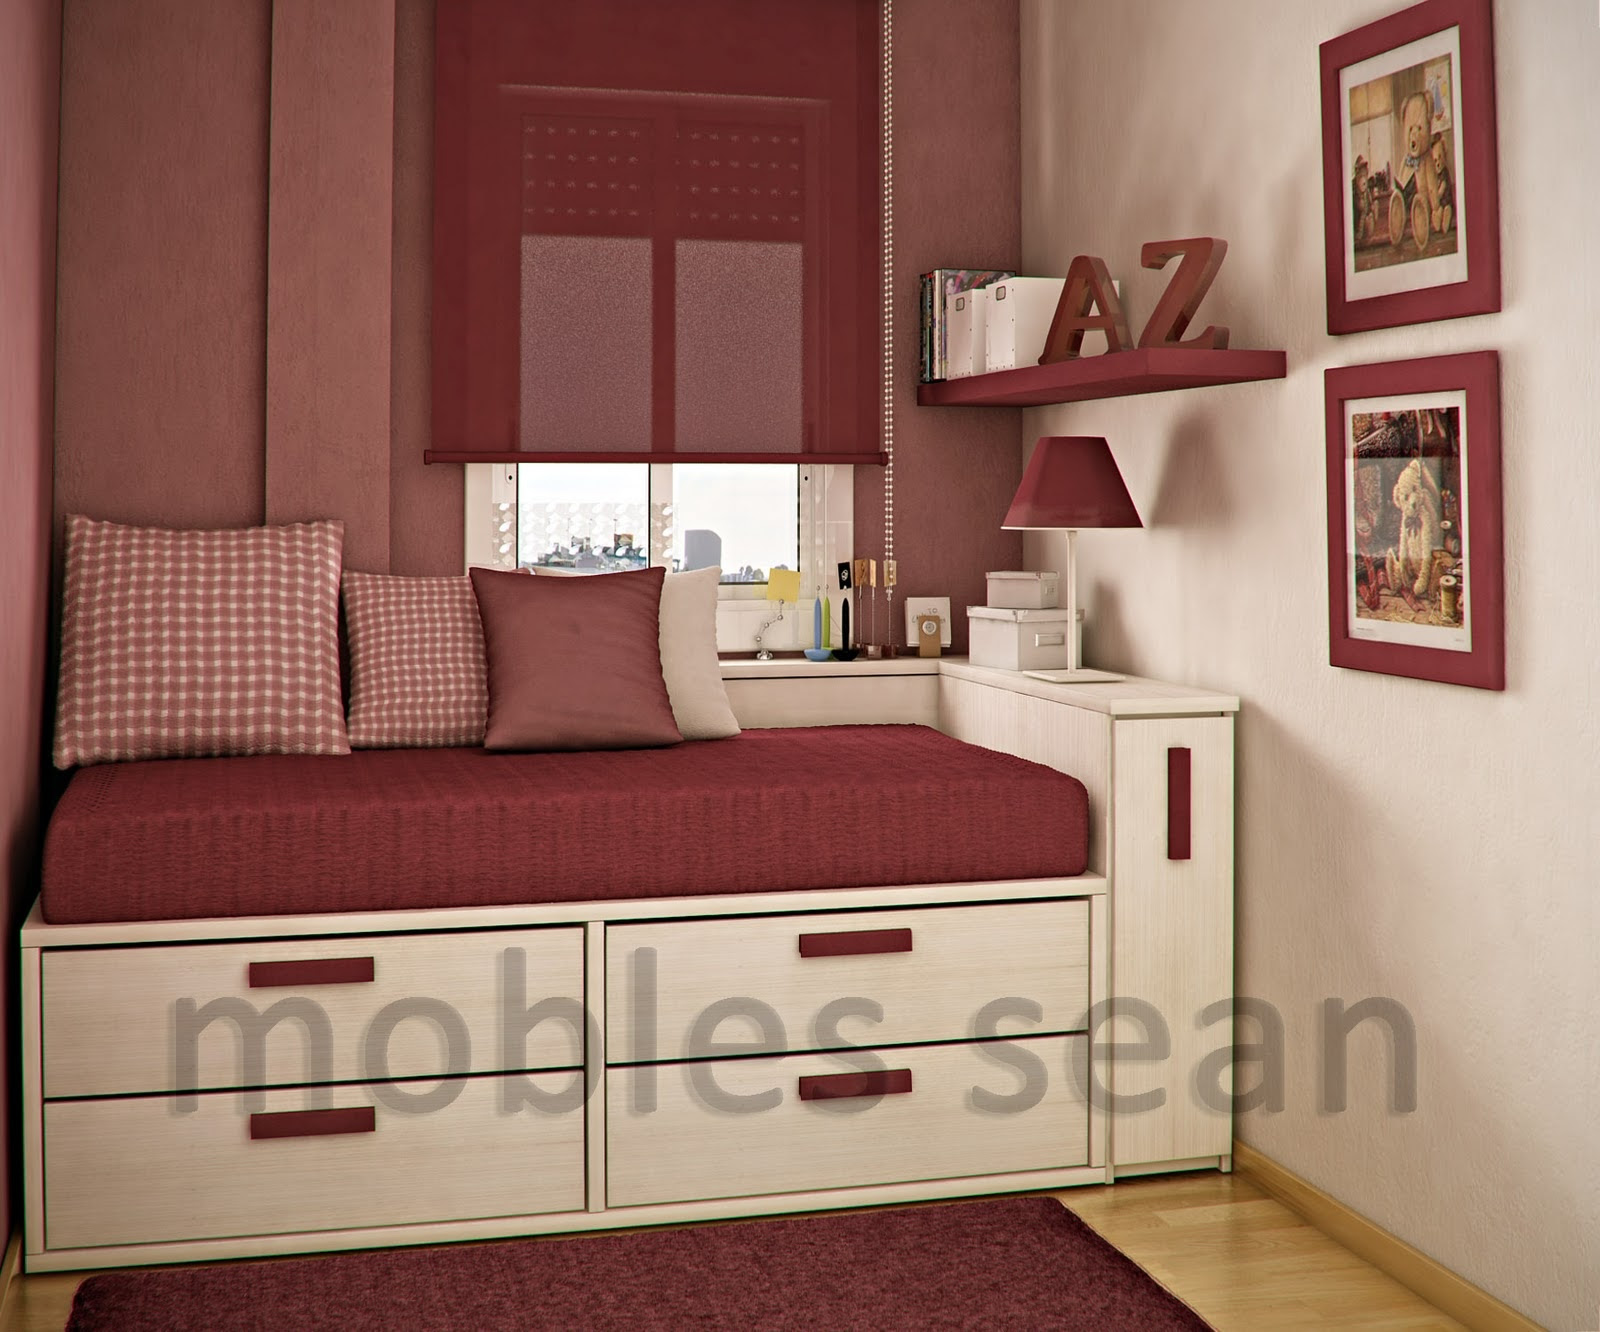 Bedroom Ideas With Limited Space  Home Decor